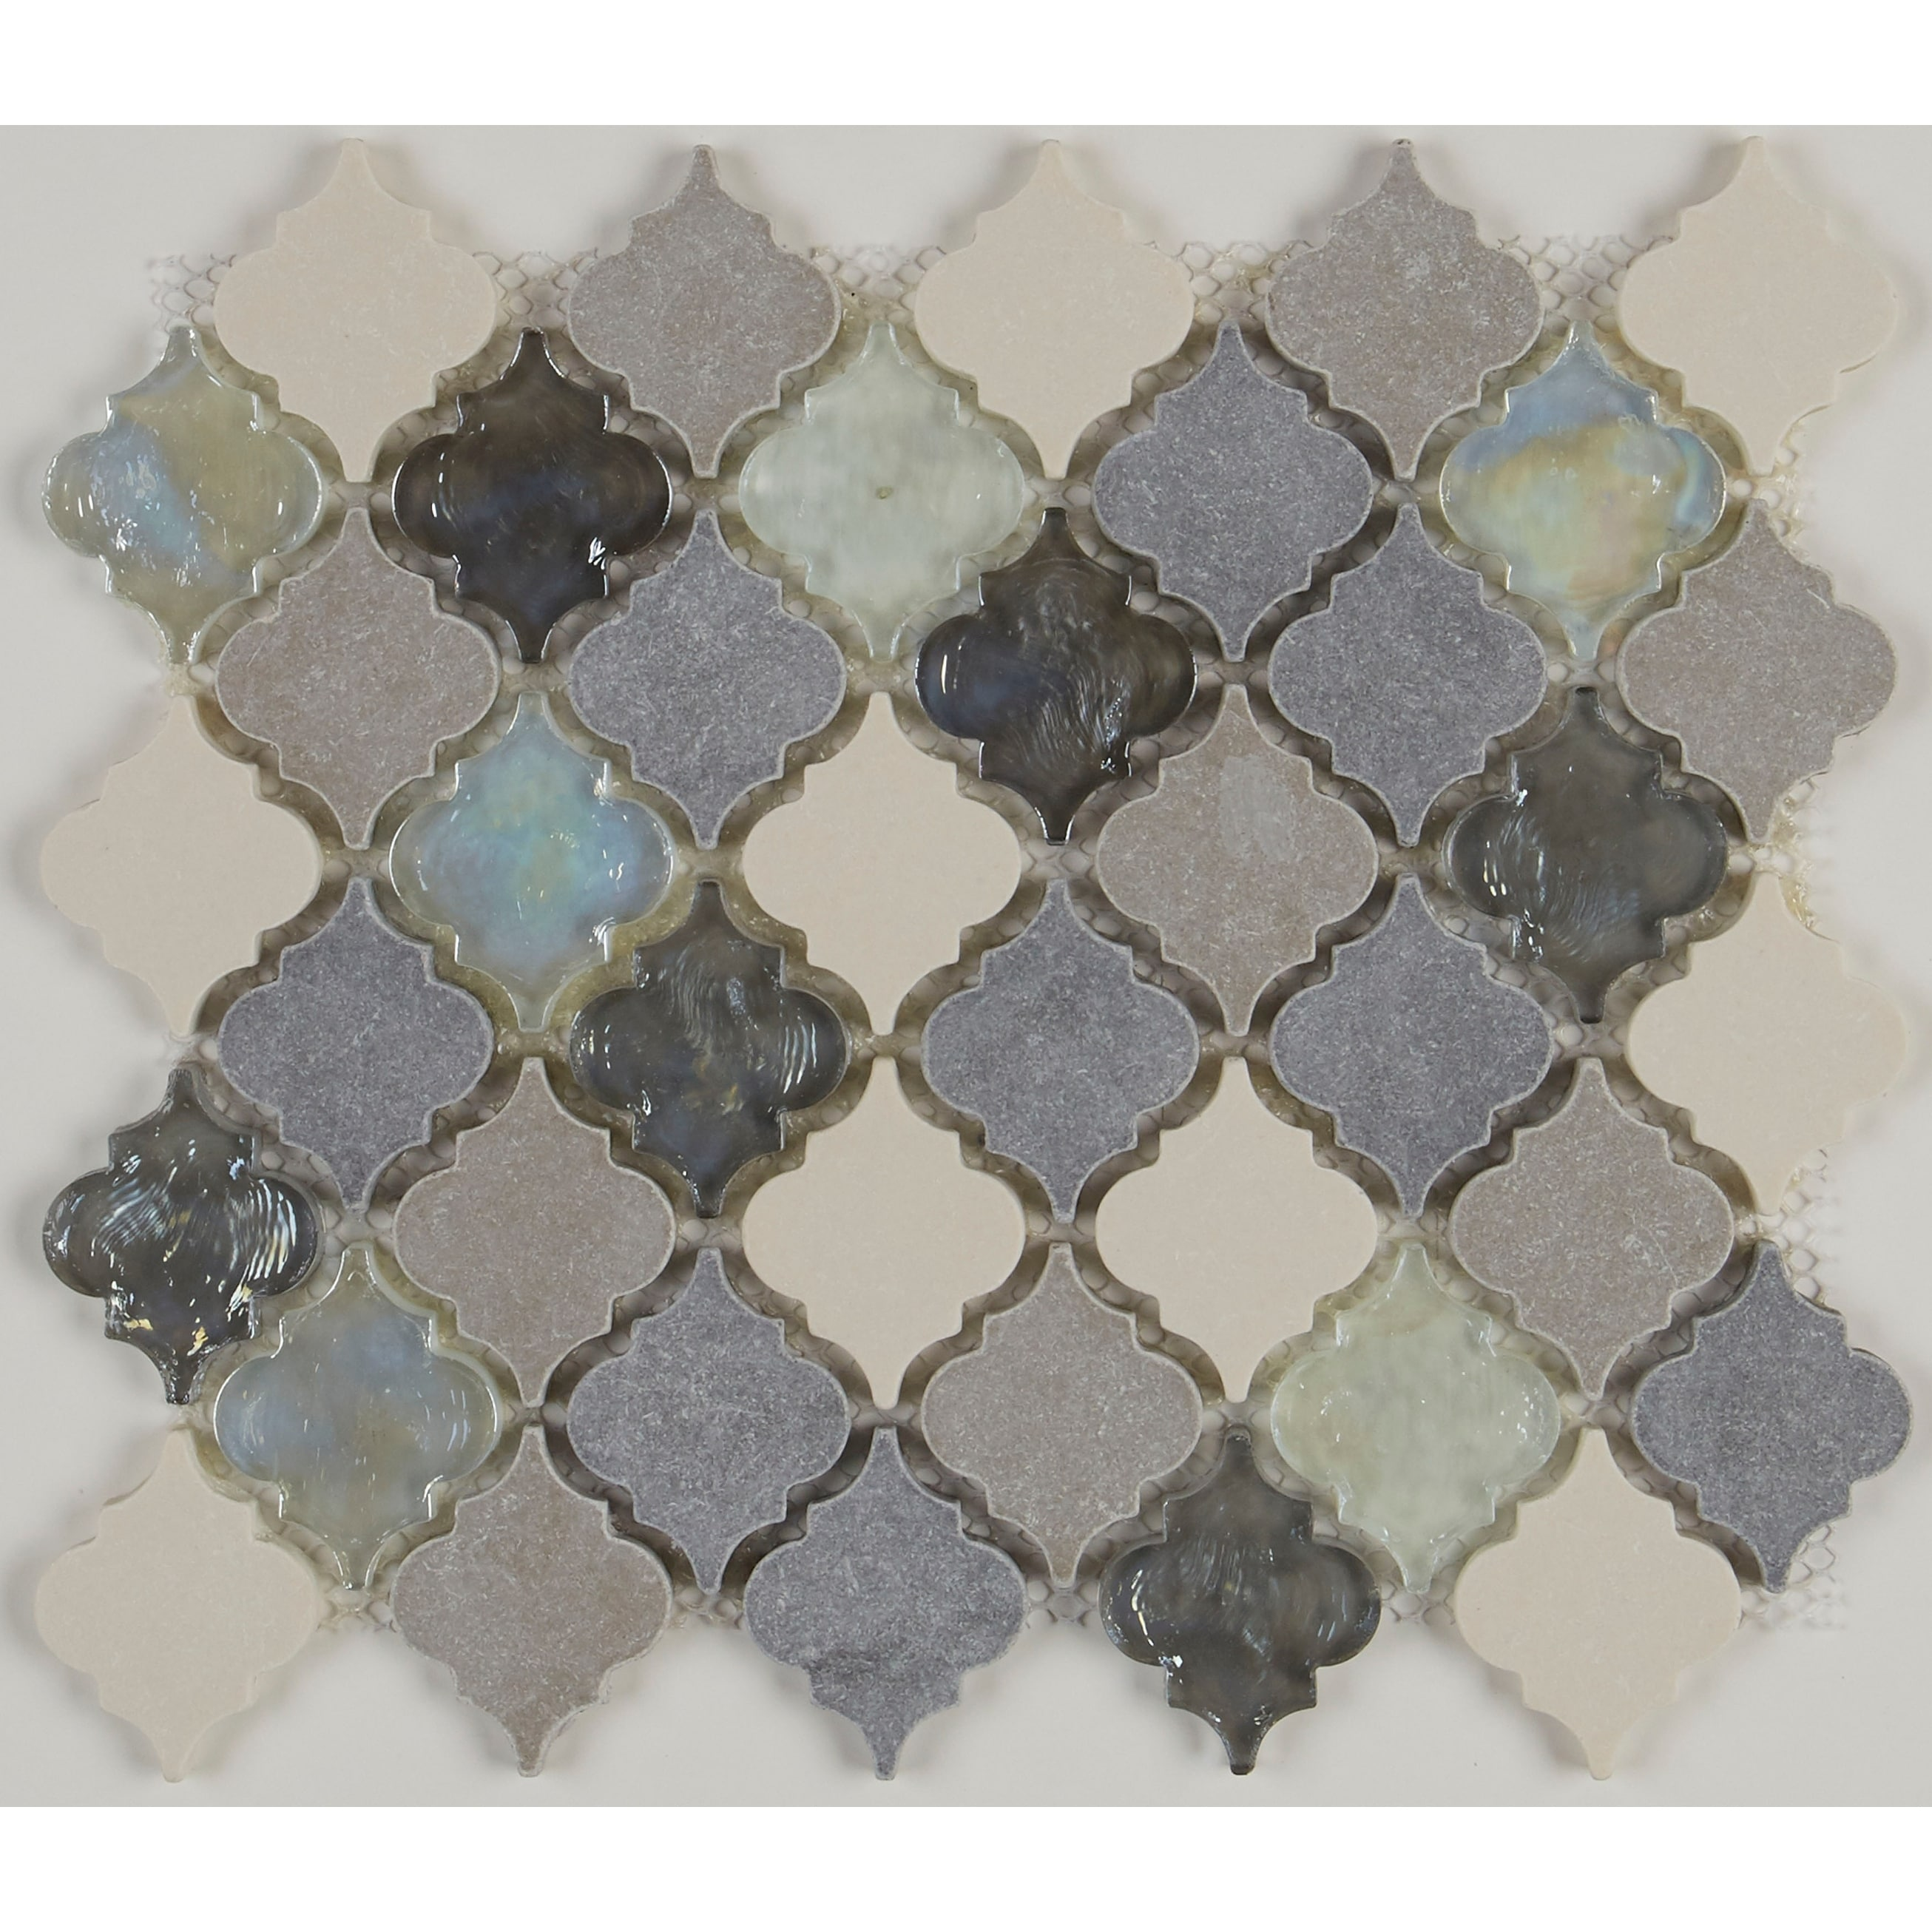 Gris Et Beige Decorative Stone Accent 2 Inch Baroque Mosaic Tile In Gris Et Blanc 12 75x12